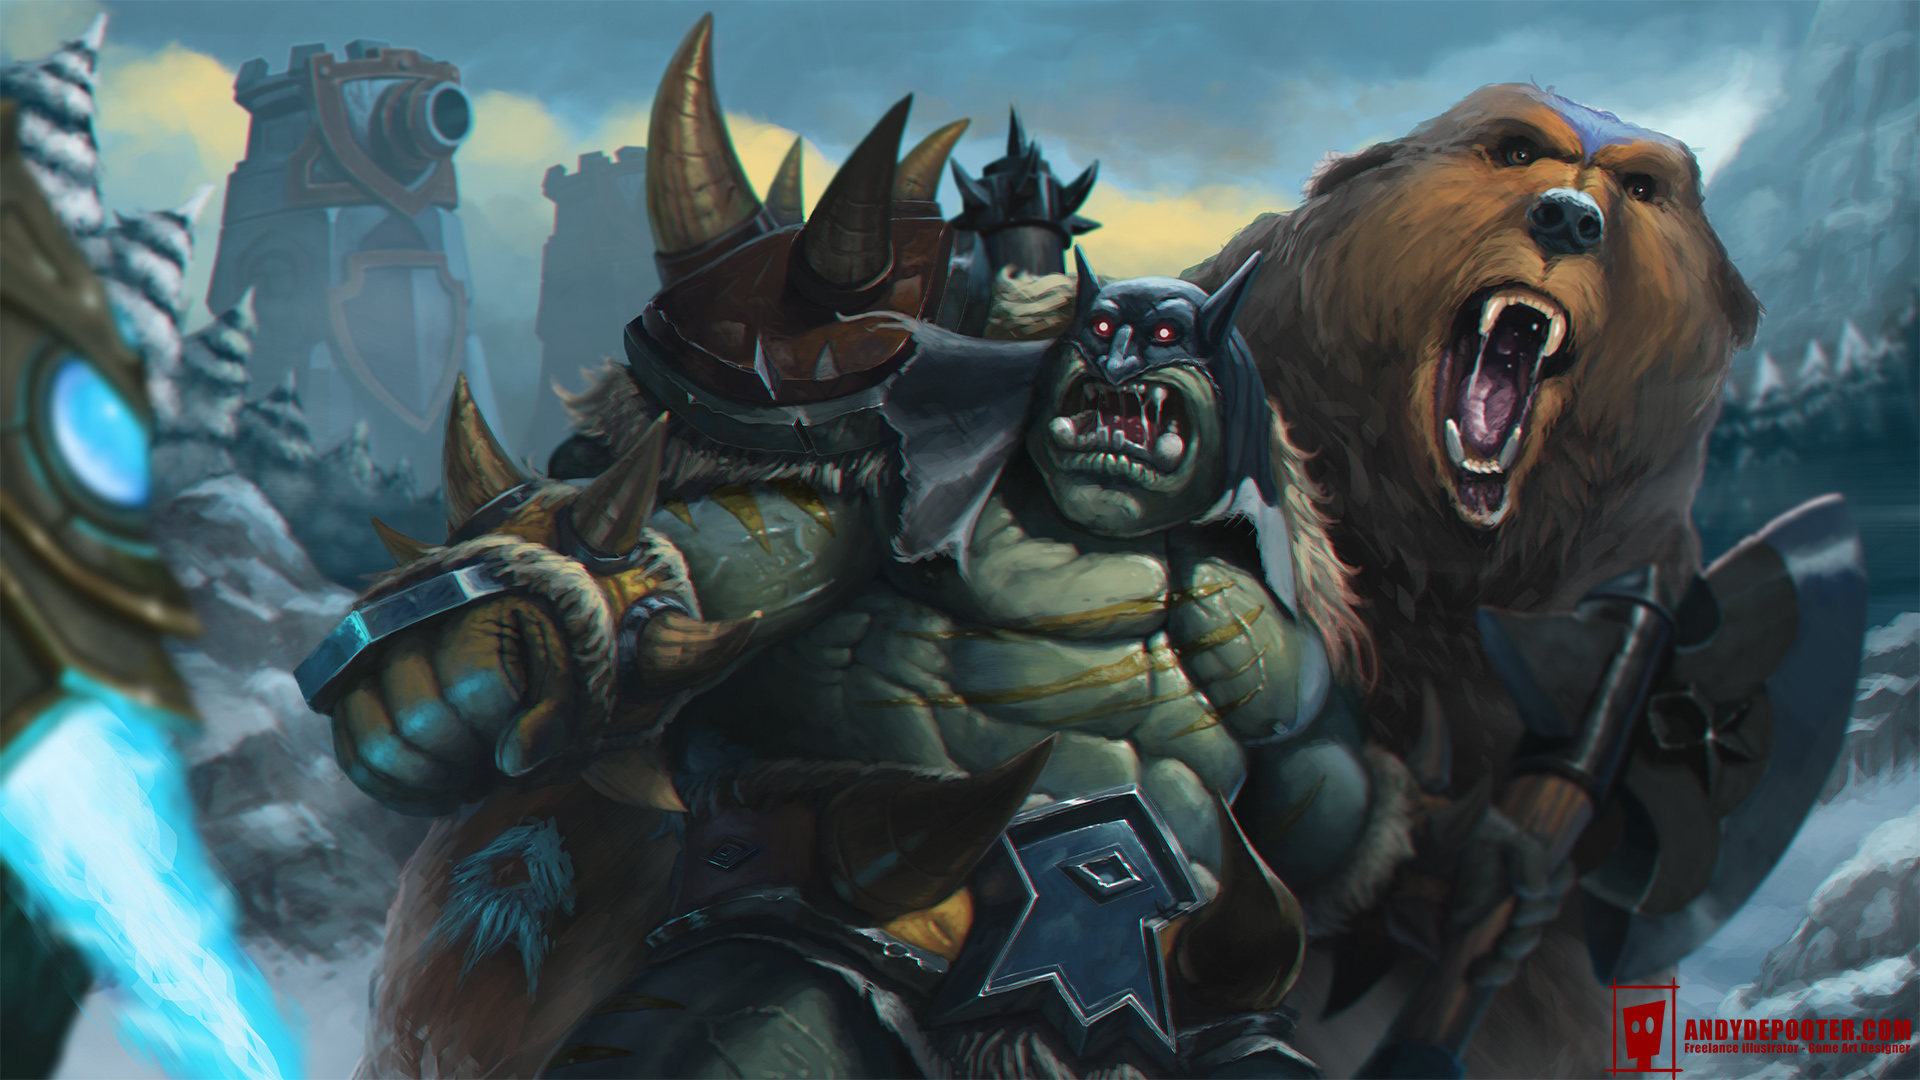 Heroes Of The Storm Rexxar And Misha By Eburone On Deviantart Every 6 seconds, rexxar and misha gain 75 physical armor against the next enemy hero basic attack, reducing the damage taken by 75%. heroes of the storm rexxar and misha